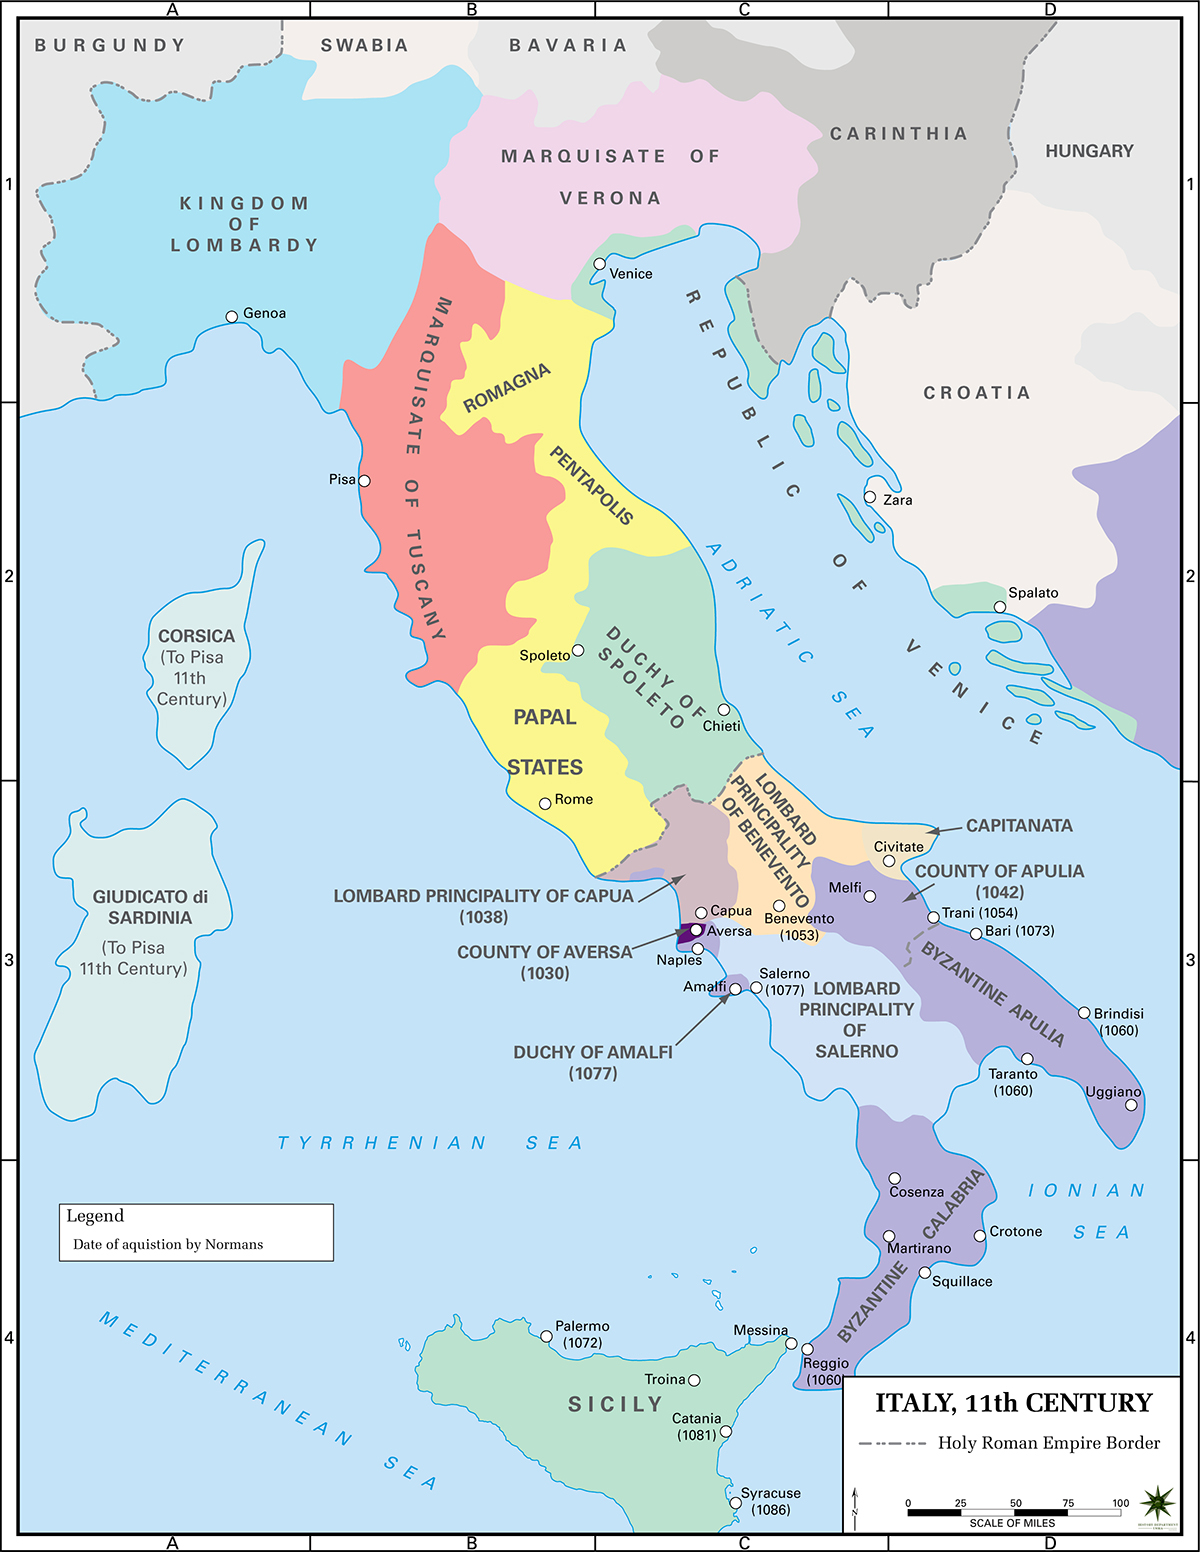 Political Map of Italy in the 11th Century